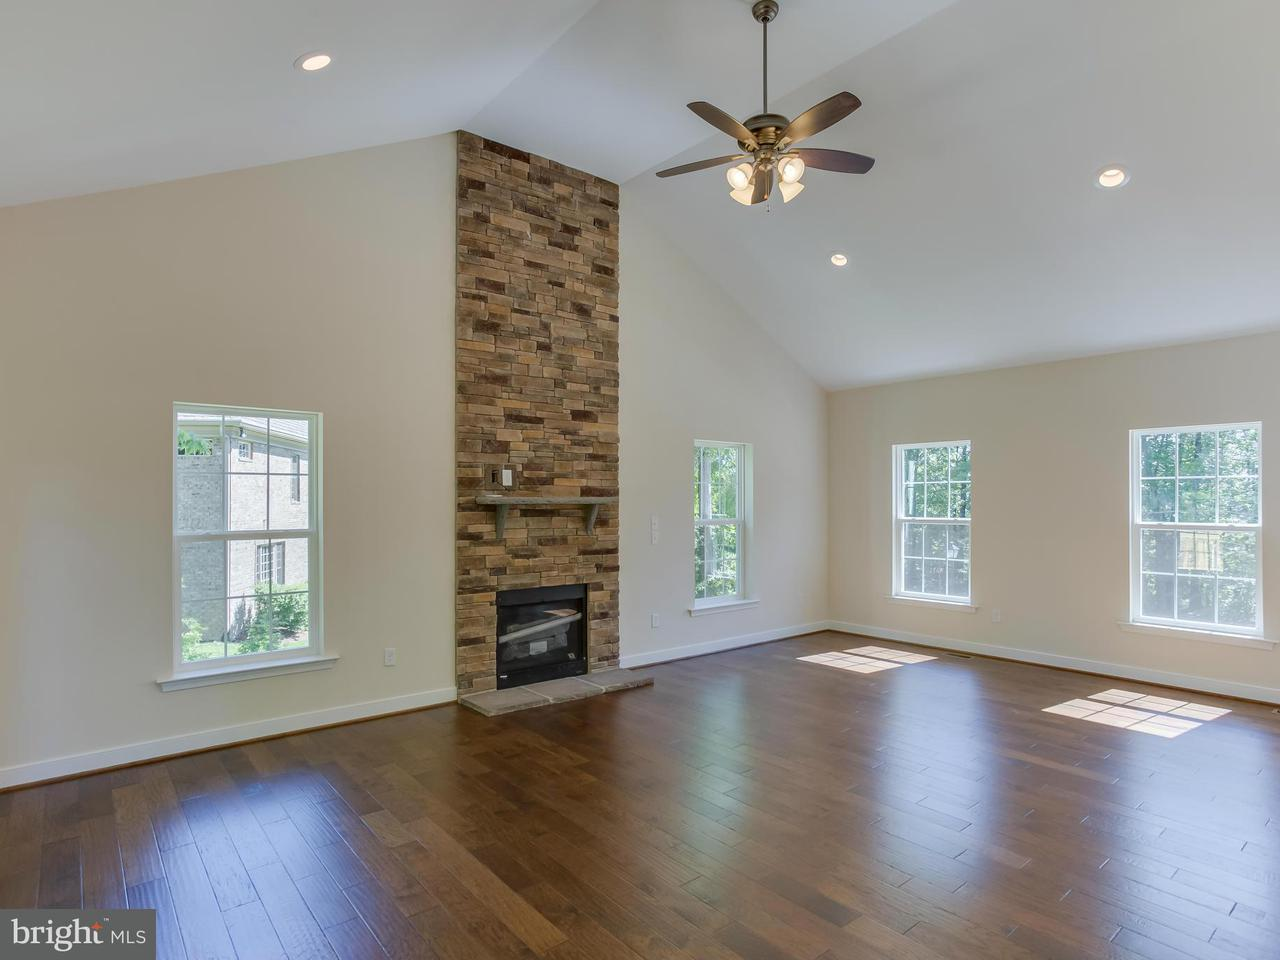 Additional photo for property listing at 1509 Keeneland Road 1509 Keeneland Road Fredericksburg, 弗吉尼亚州 22401 美国